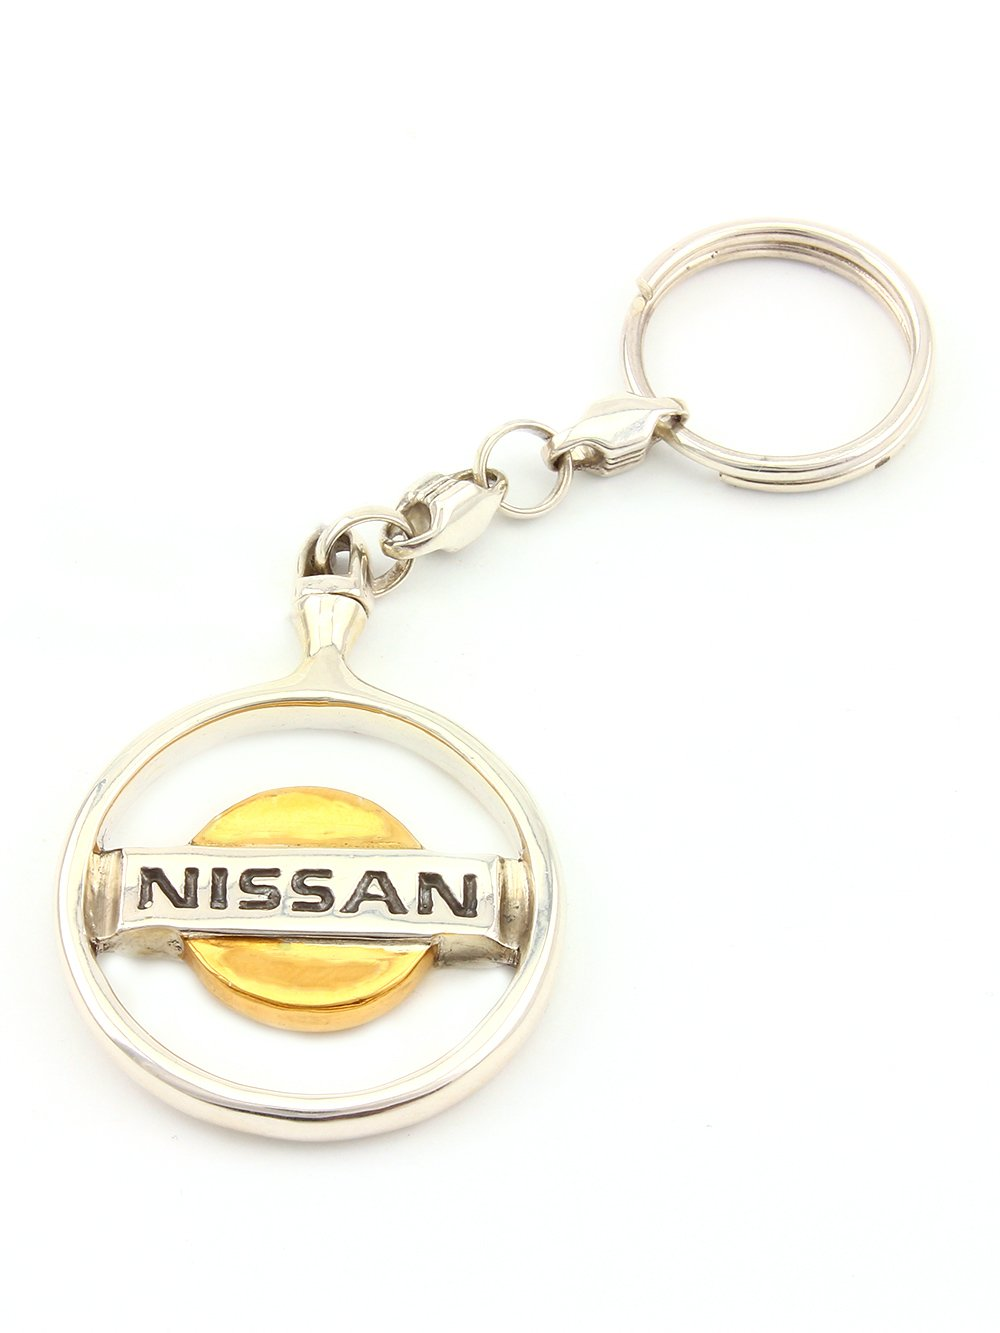 Silver Keychain For Nissan - Unique Key ring - Solid Sterling Silver - Gift for Men